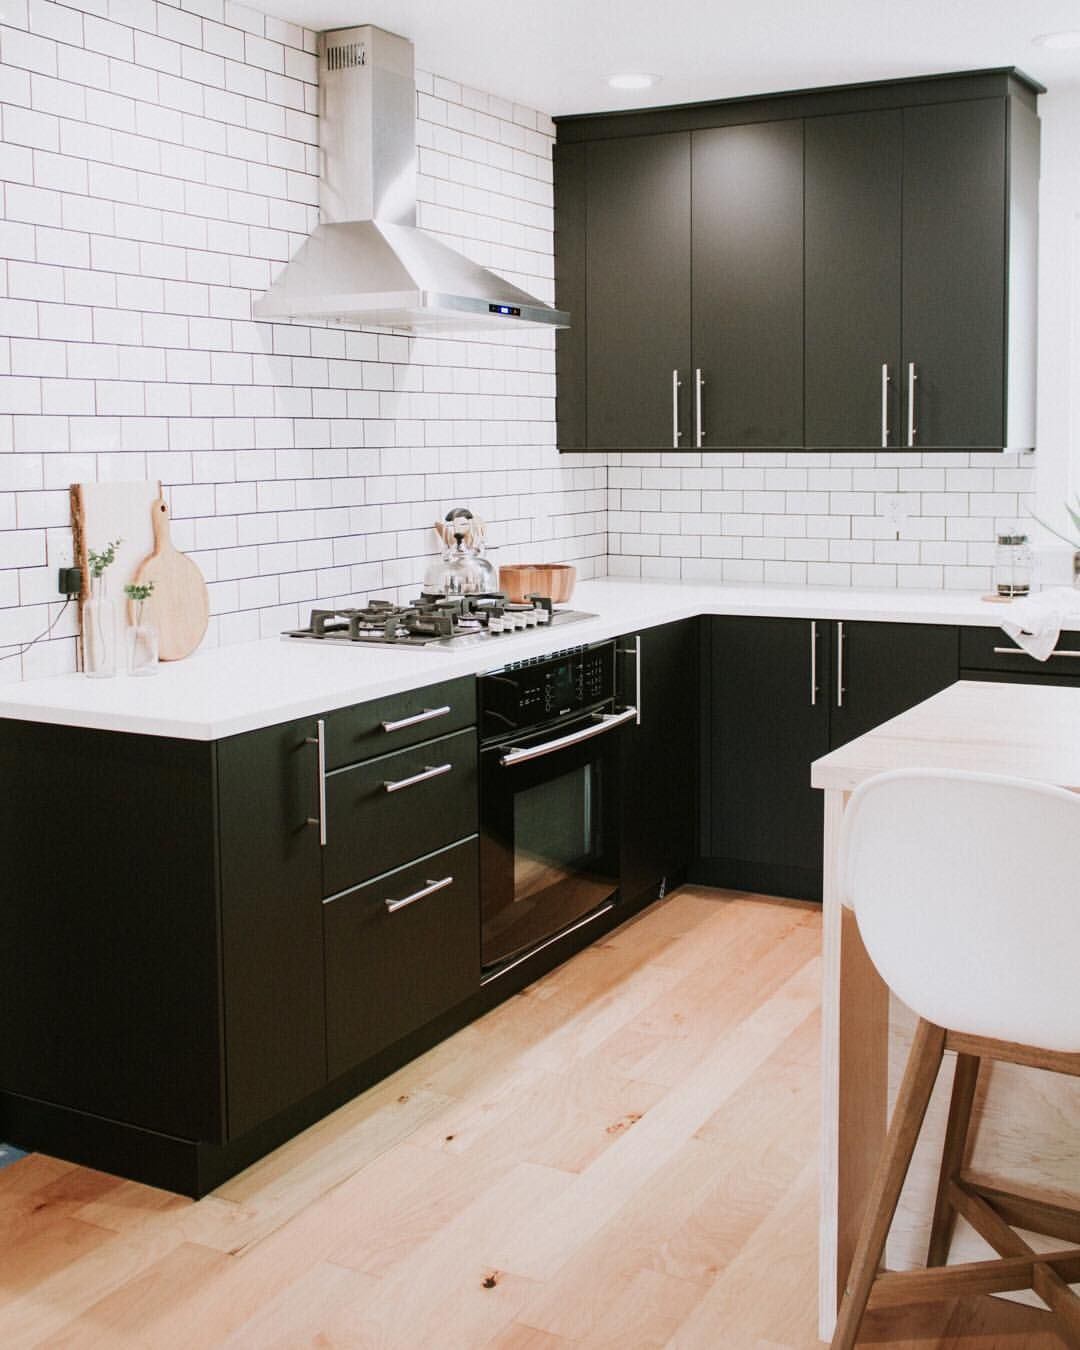 Cucina Ikea Metod Kungsbacka Seriously In Love With Our Black Ikea Kitchen Cabinets Major